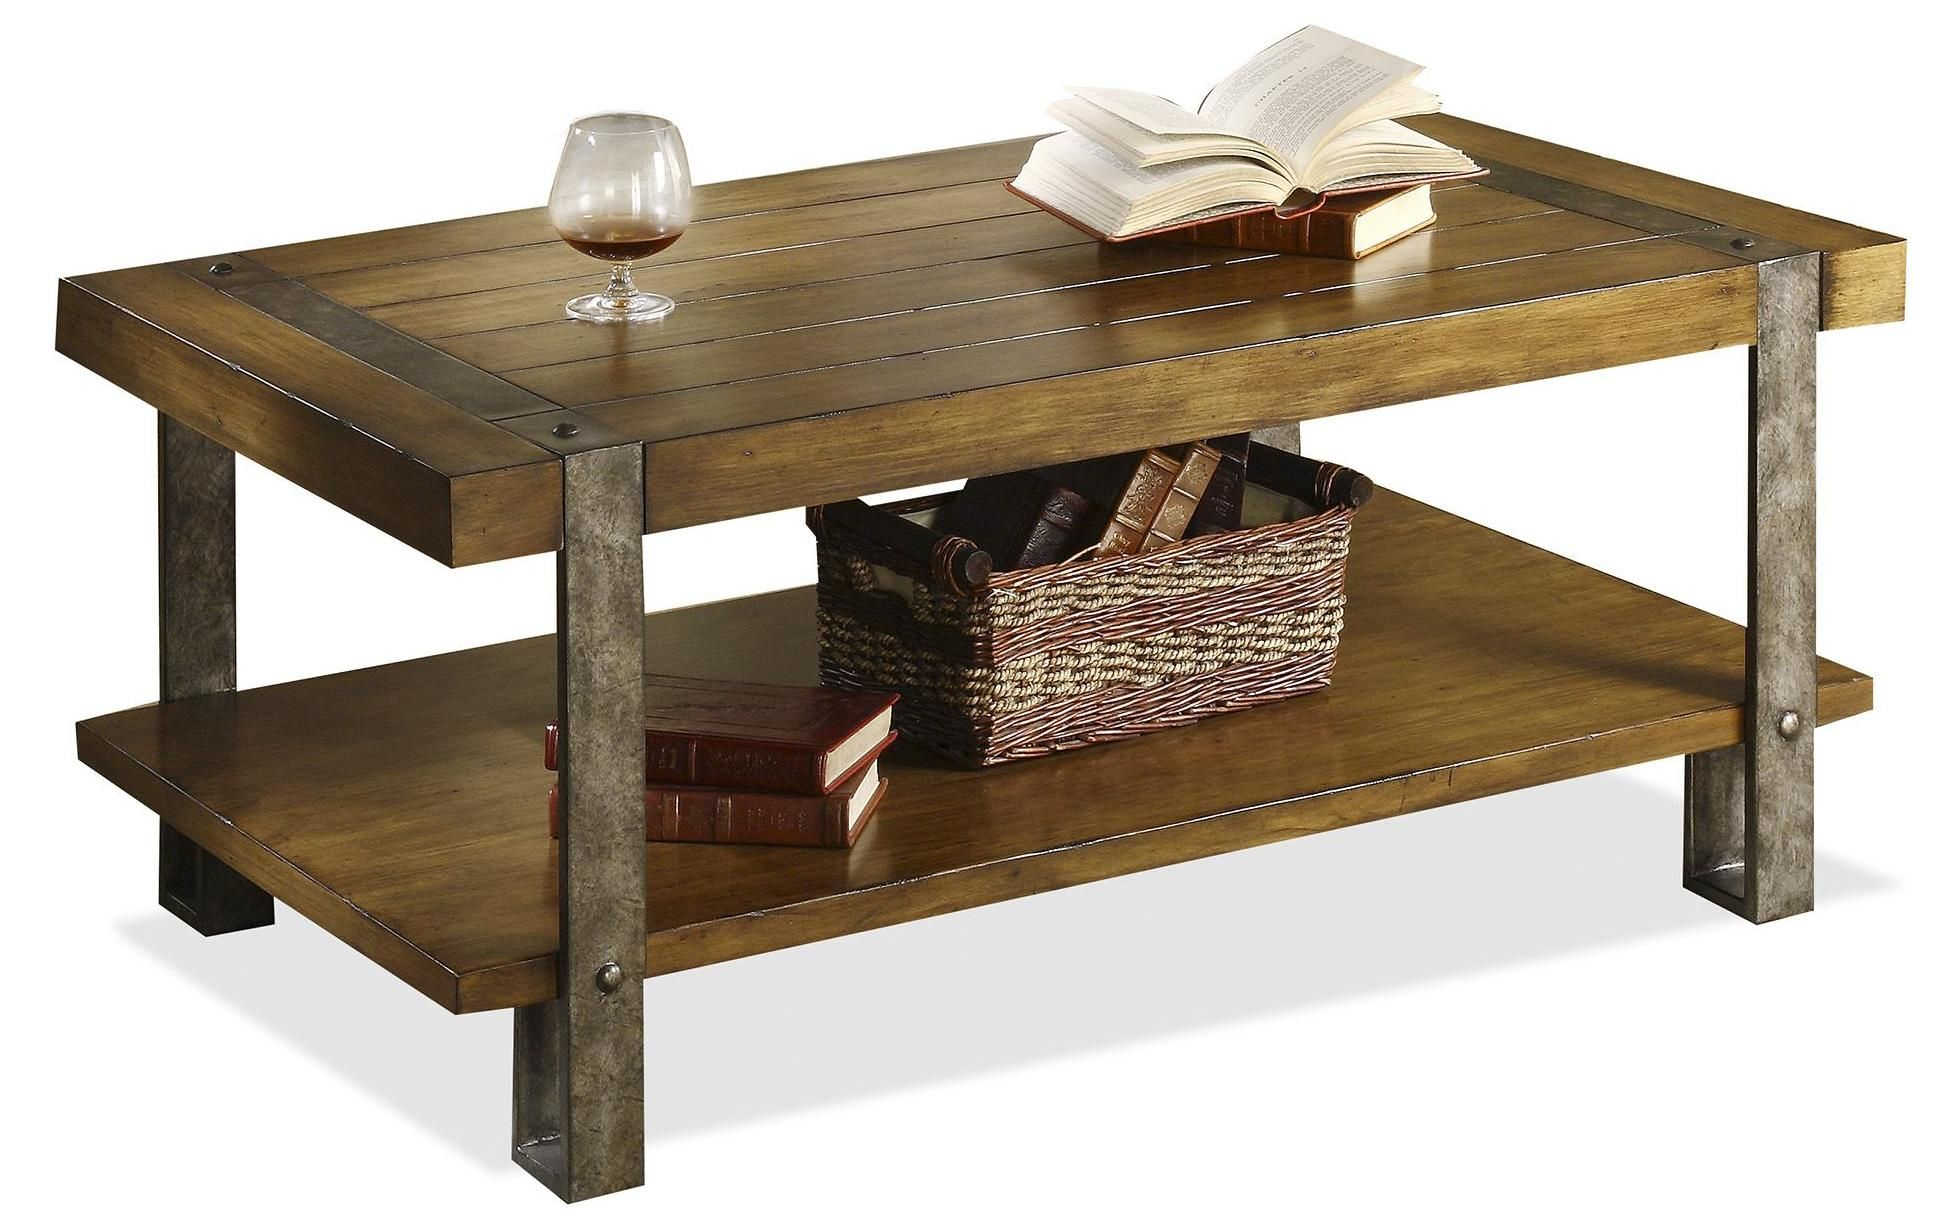 Sierra Coffee Table By Riverside Furniture A Striking Combination Of Aged Metal And Wood In Worn Oak Finish